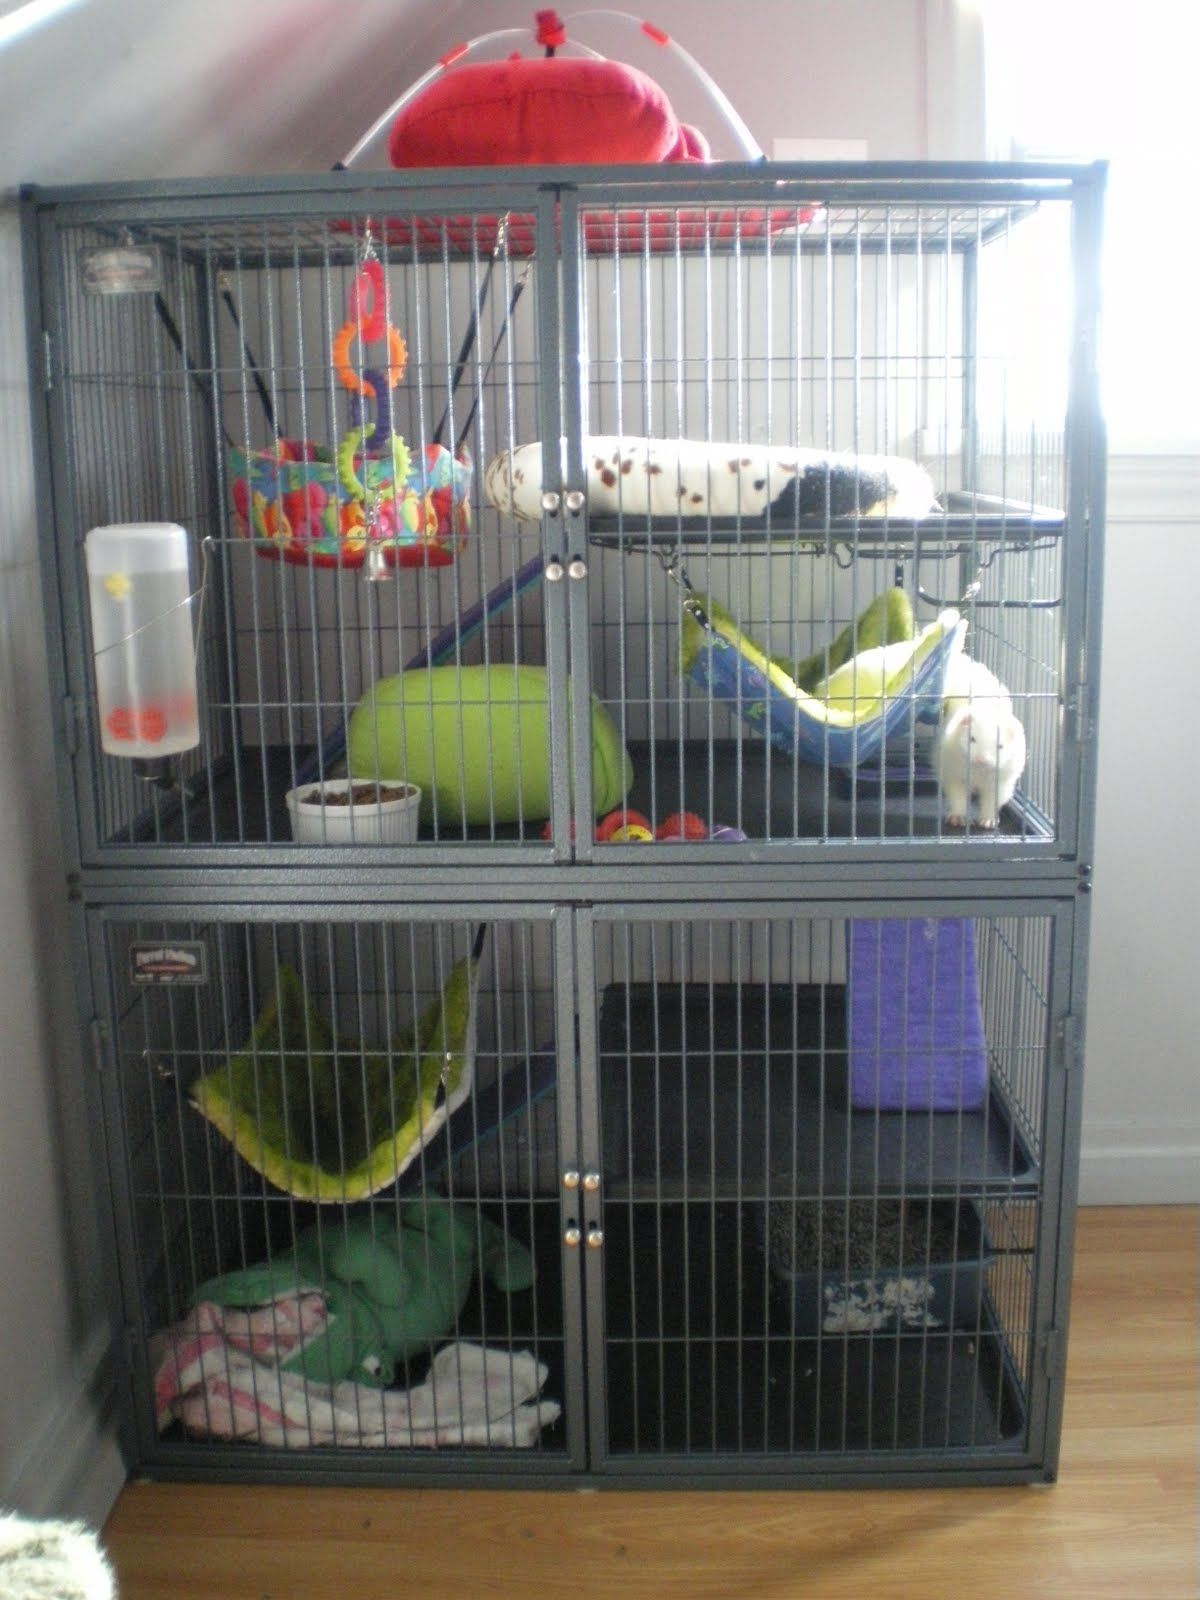 Really want a cage like this they'd have so much more